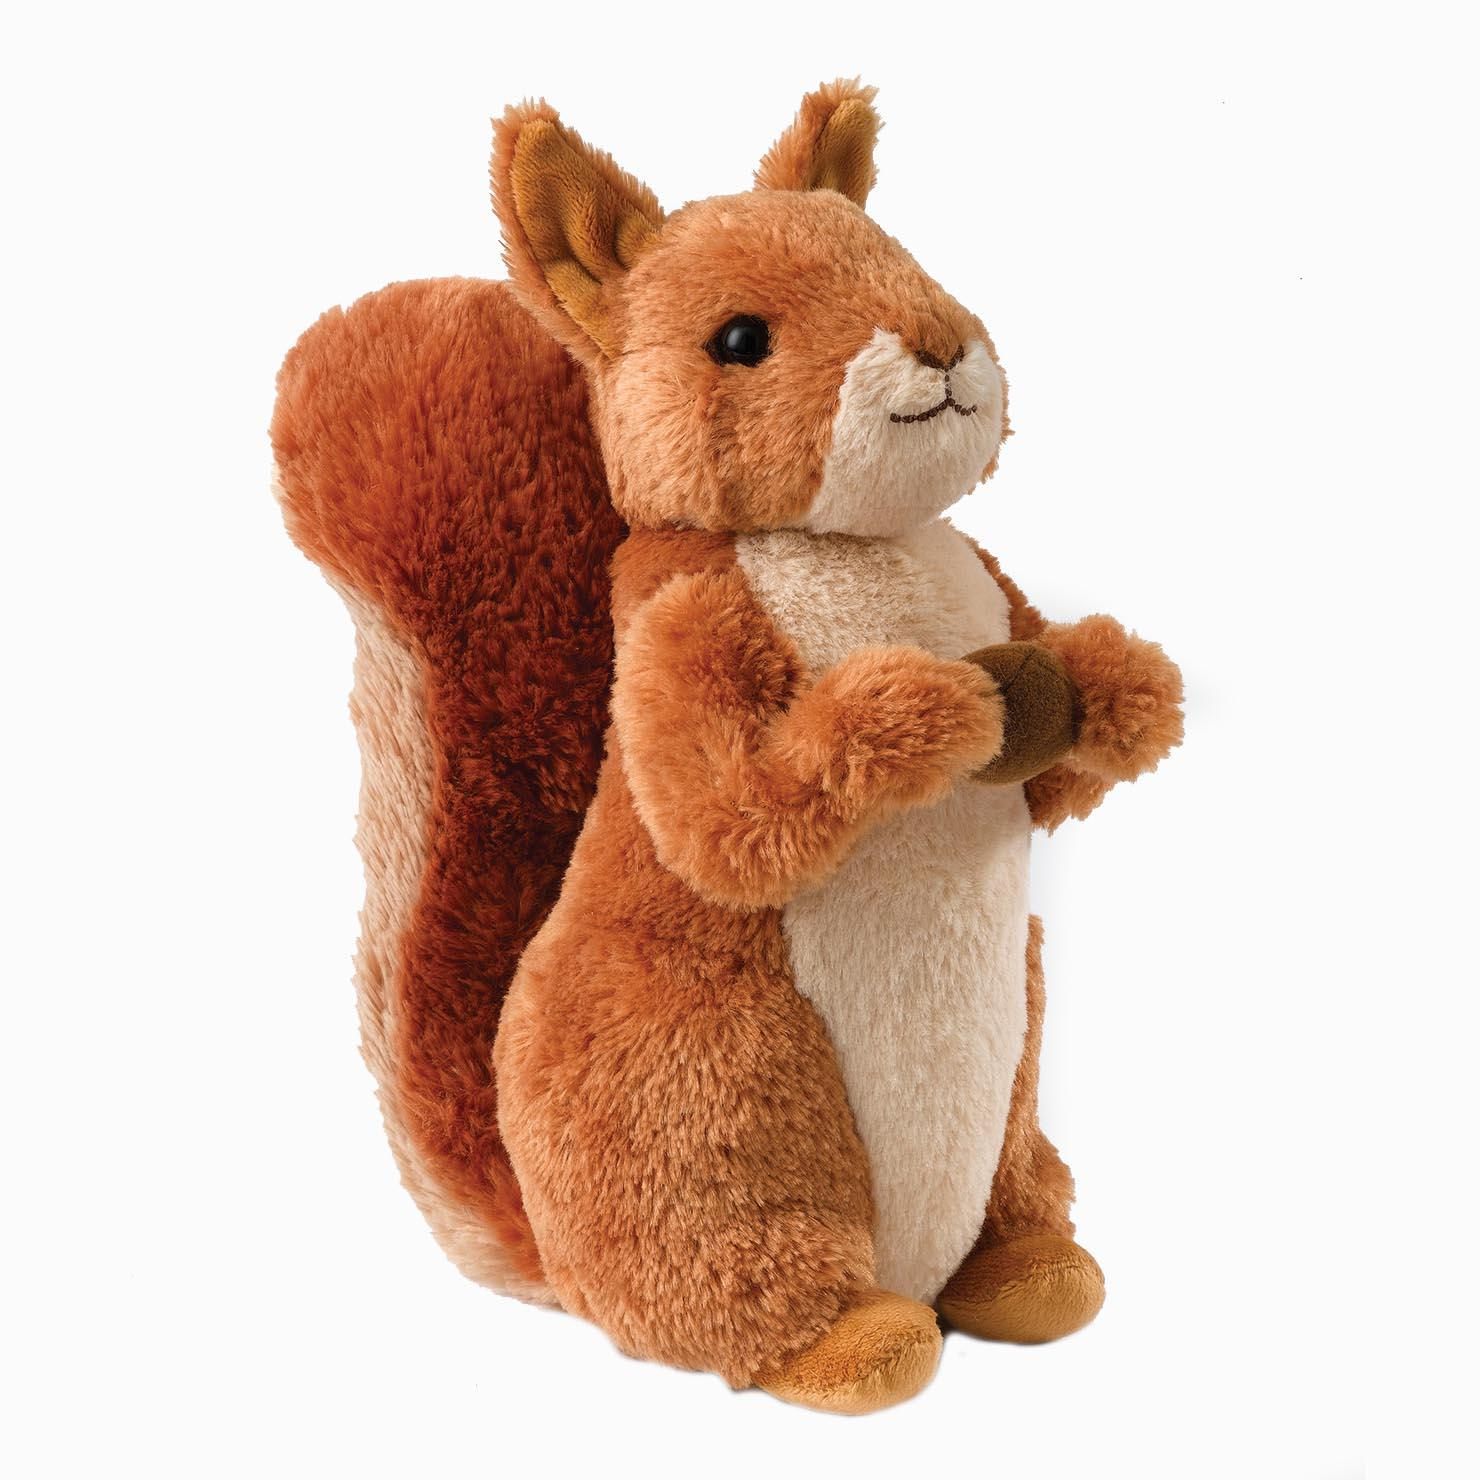 Squirrel Nutkin Peter Rabbit (26433)